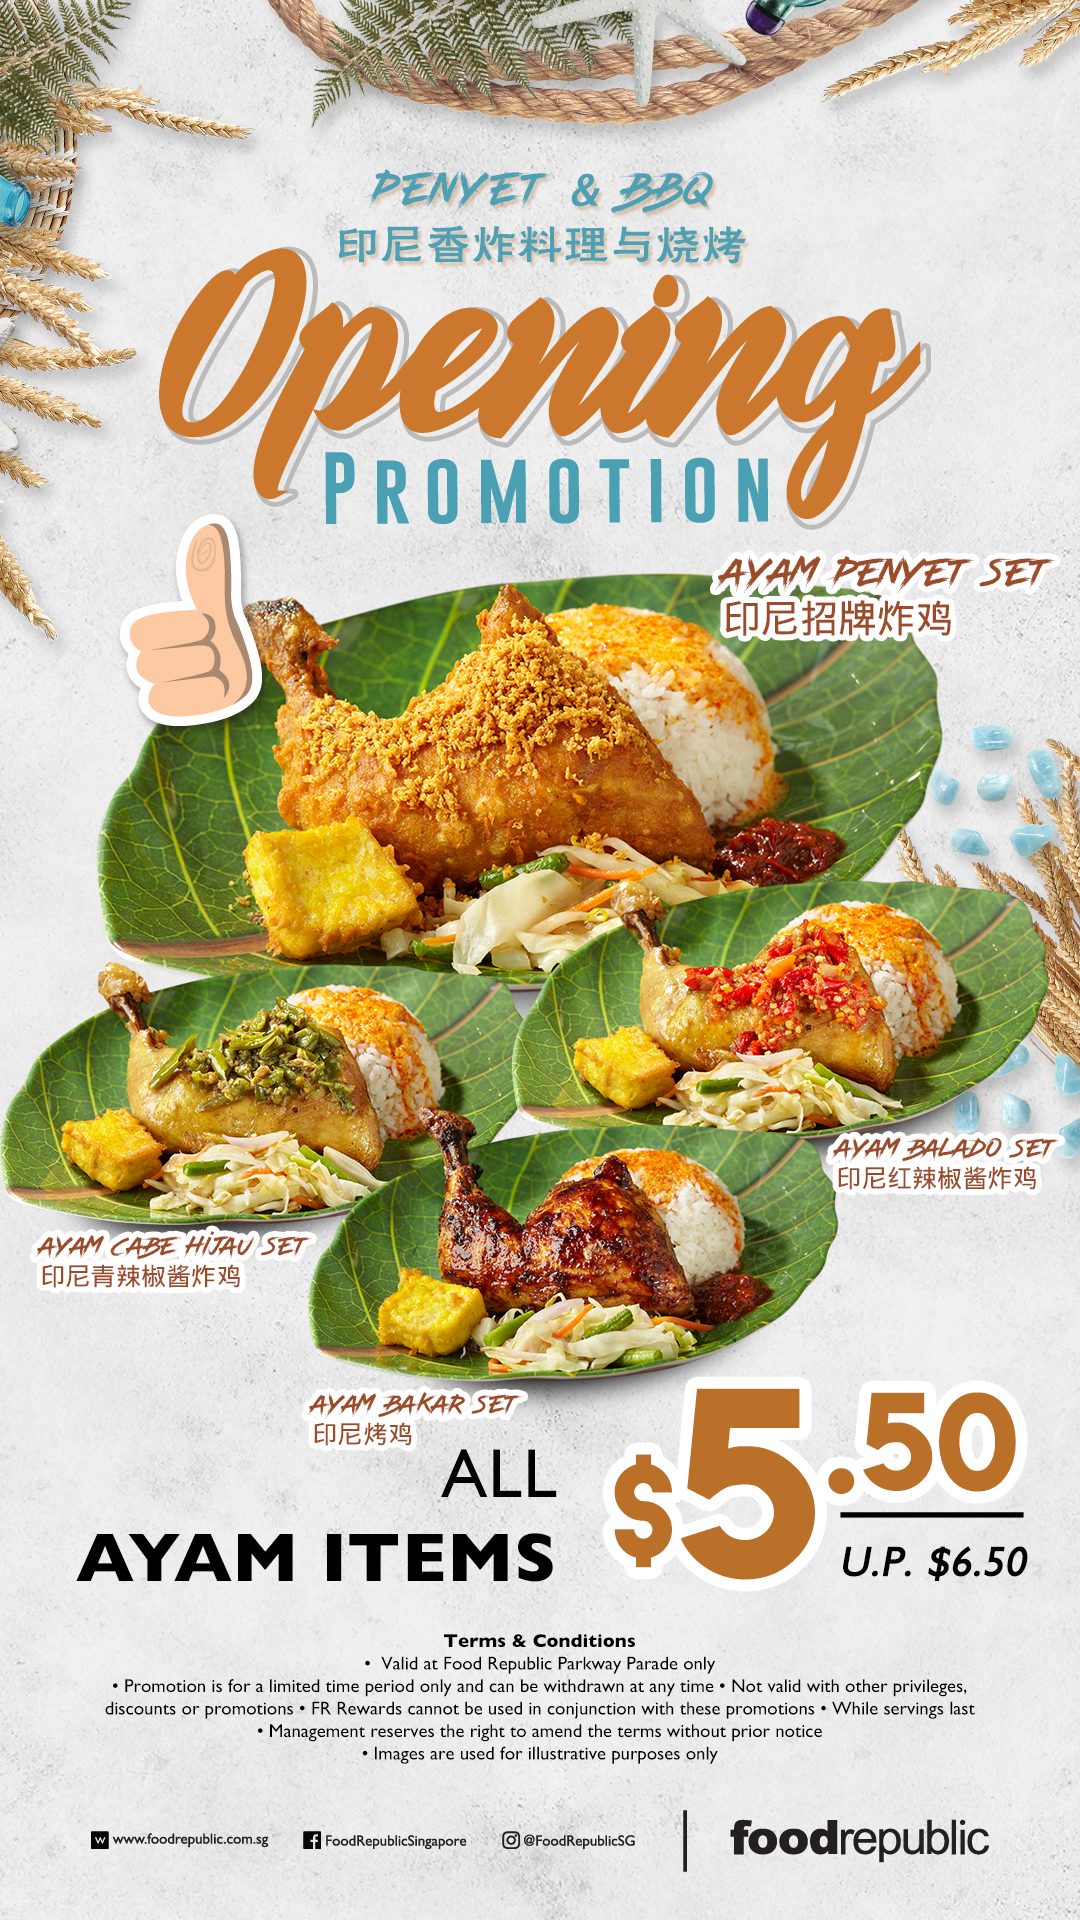 New Store Opening Promotion] Penyet & BBQ Opening Promotion